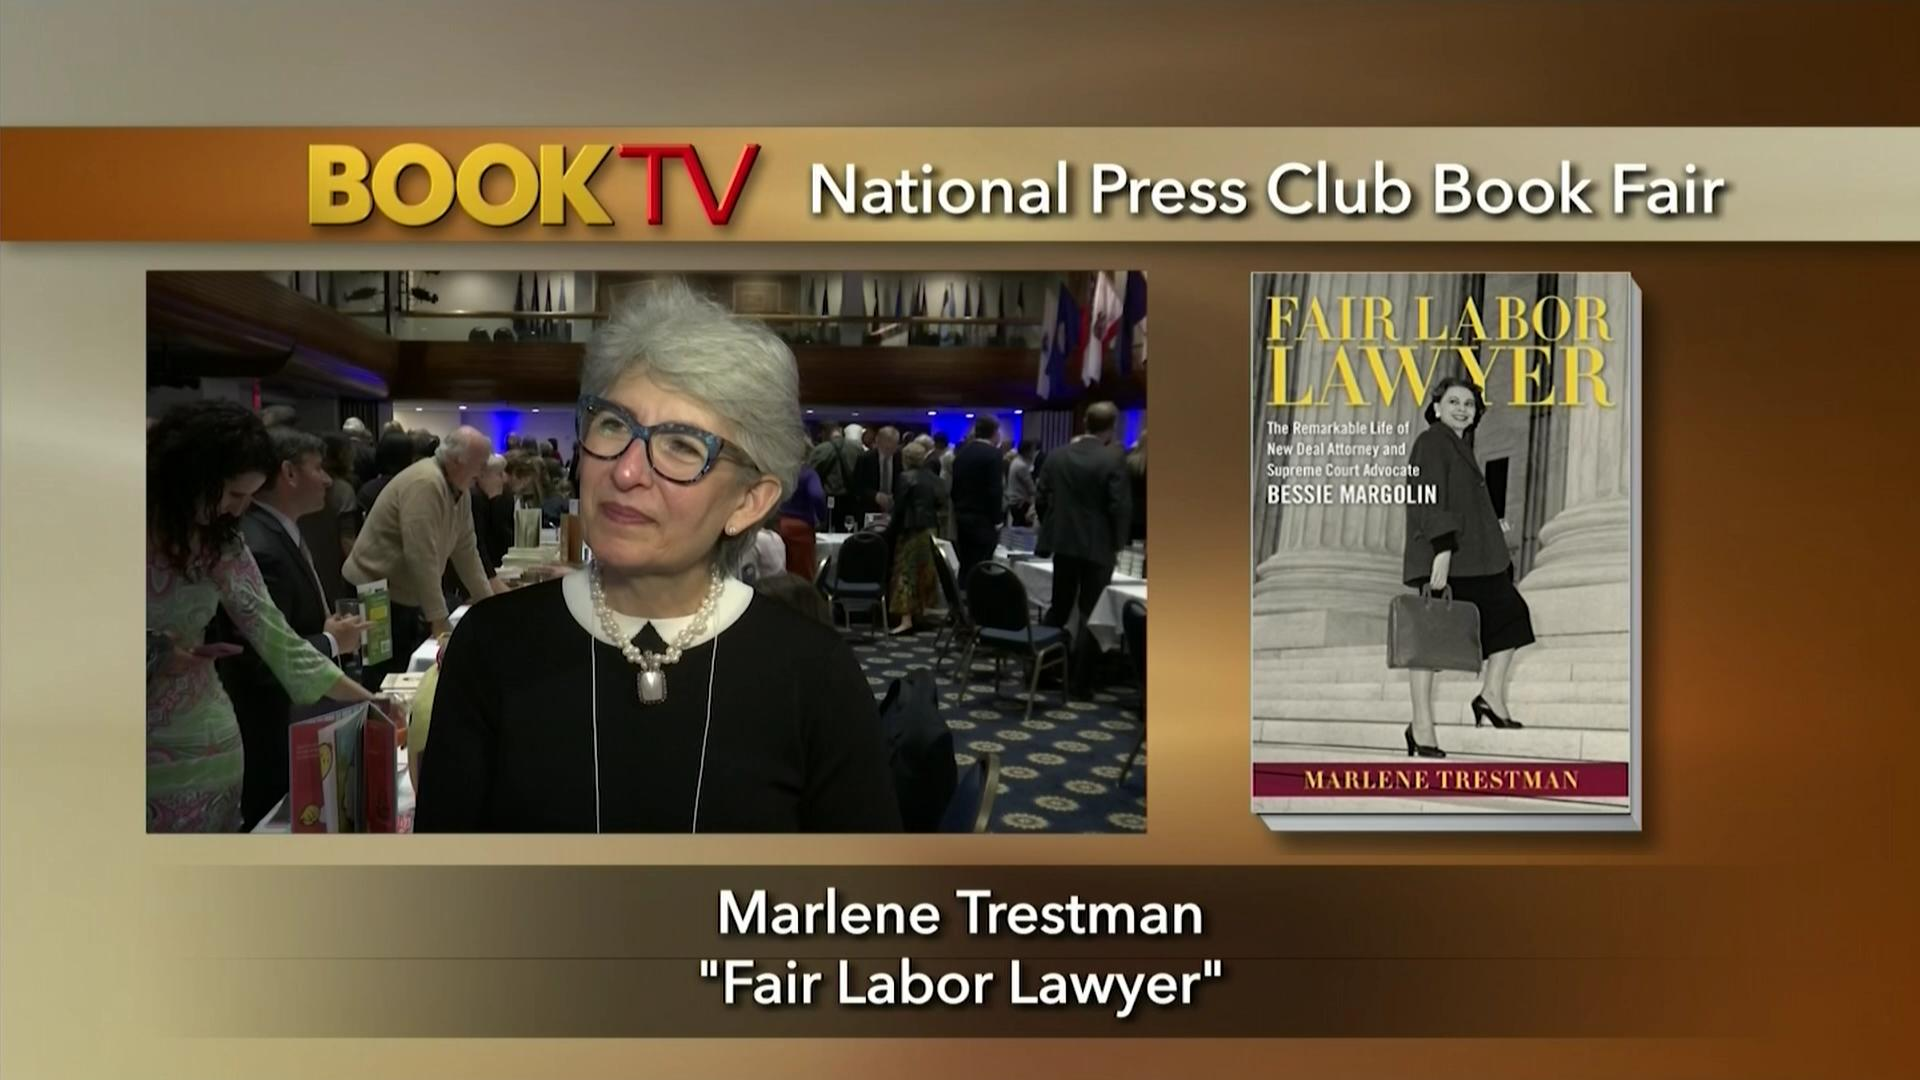 Interview on Fair Labor Lawyer